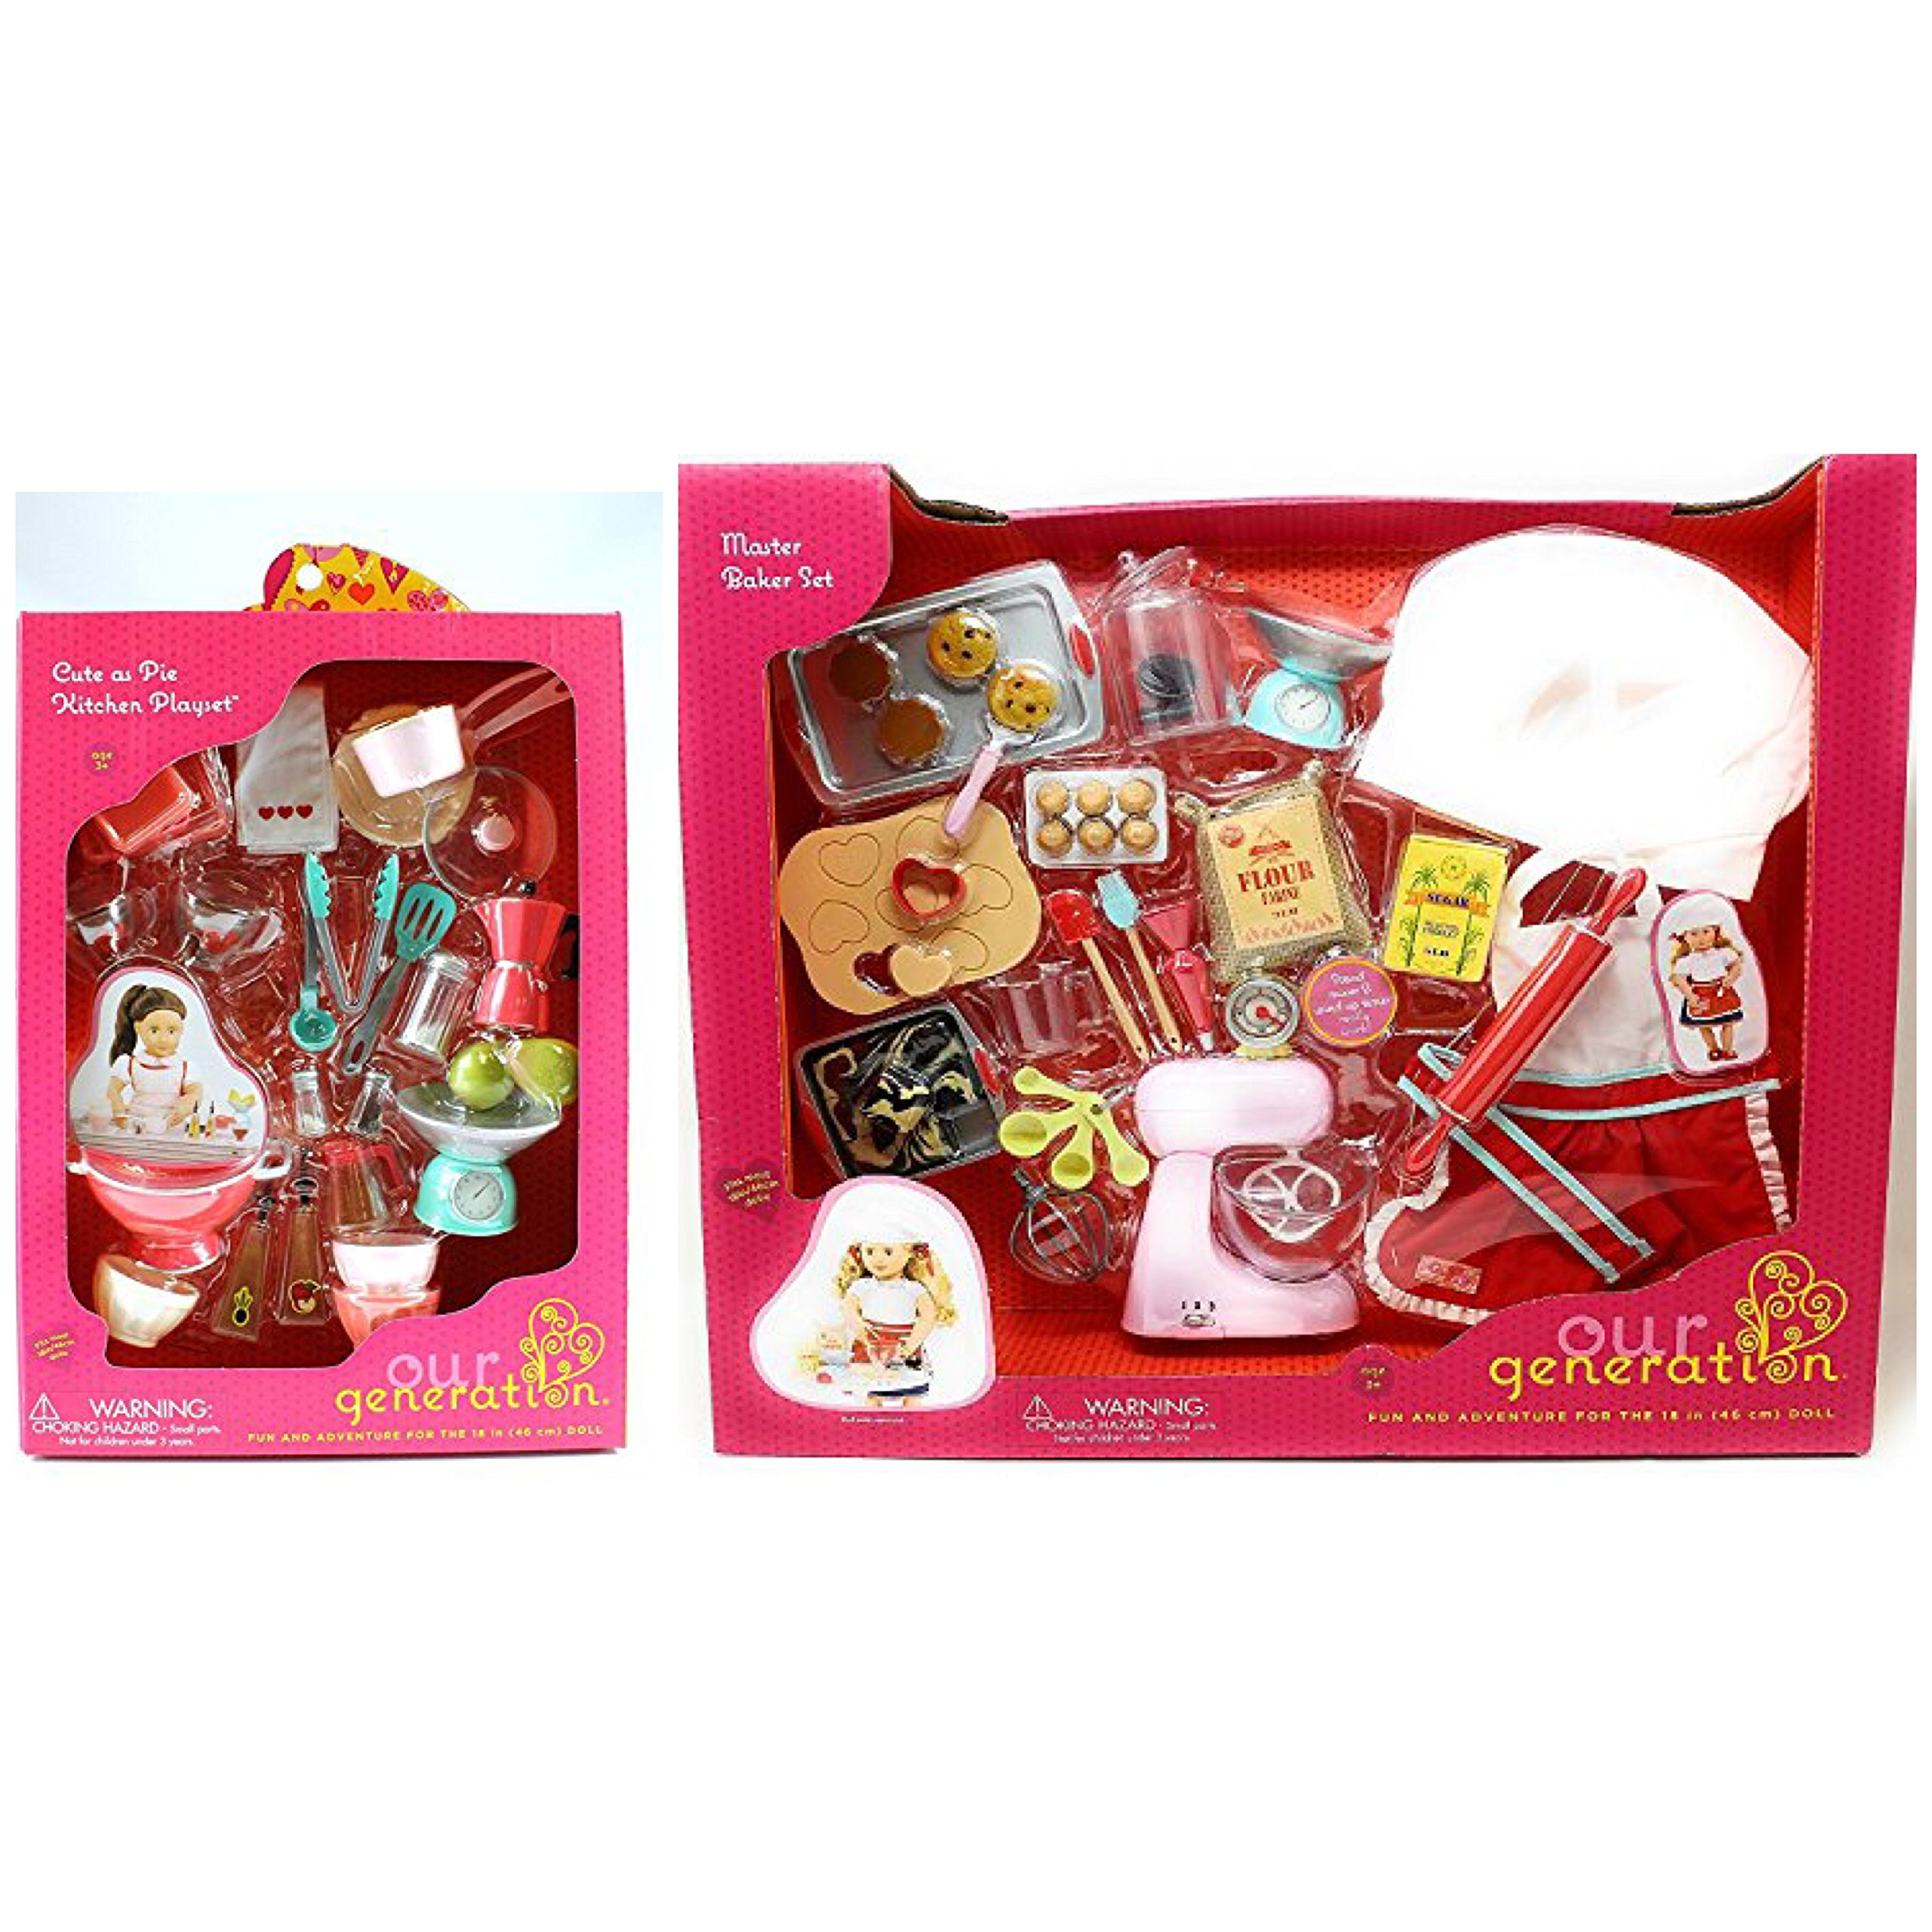 CHRISTMAS BUNDLE ! Our Generation Home Baking Accessory Set AND Our Generation Pegged Accessory - Cute as Pie Kitchen Playset by Our Generation